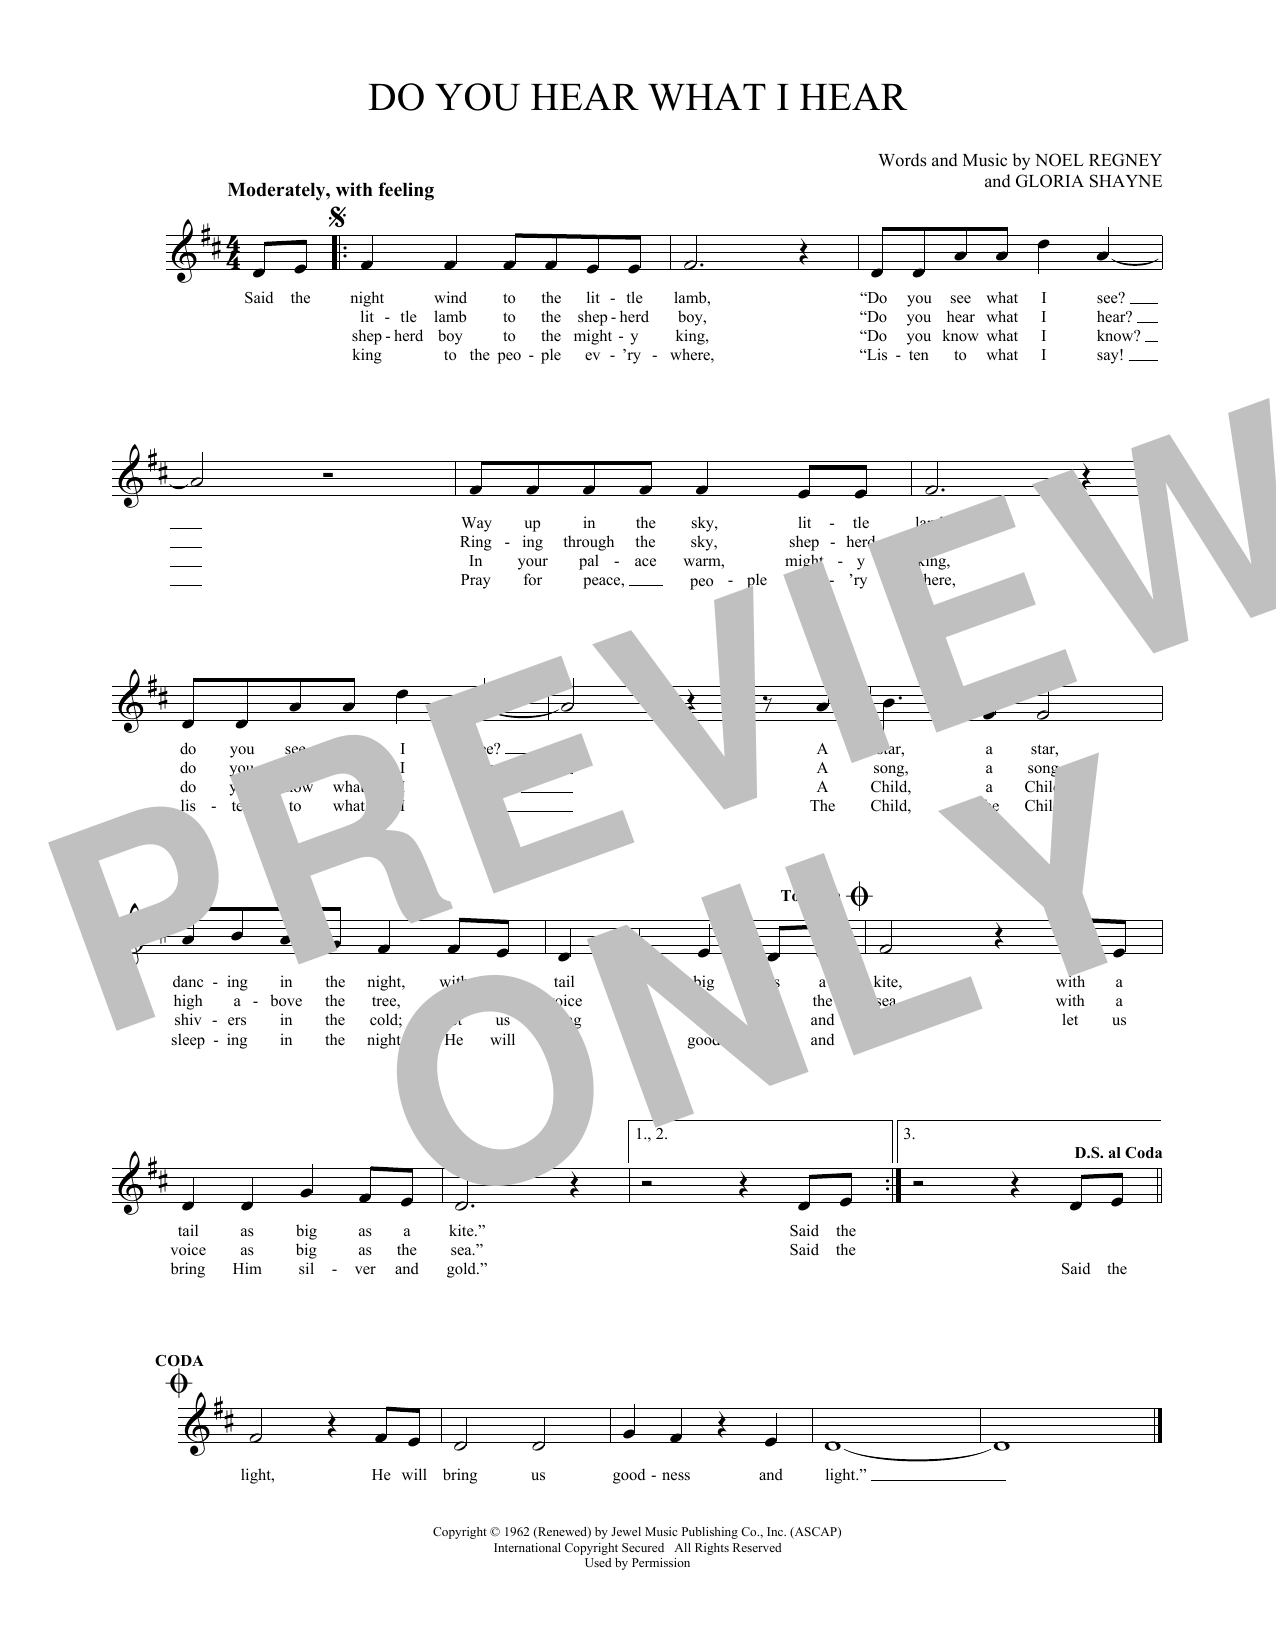 Gloria Shayne Do You Hear What I Hear Sheet Music Notes Chords